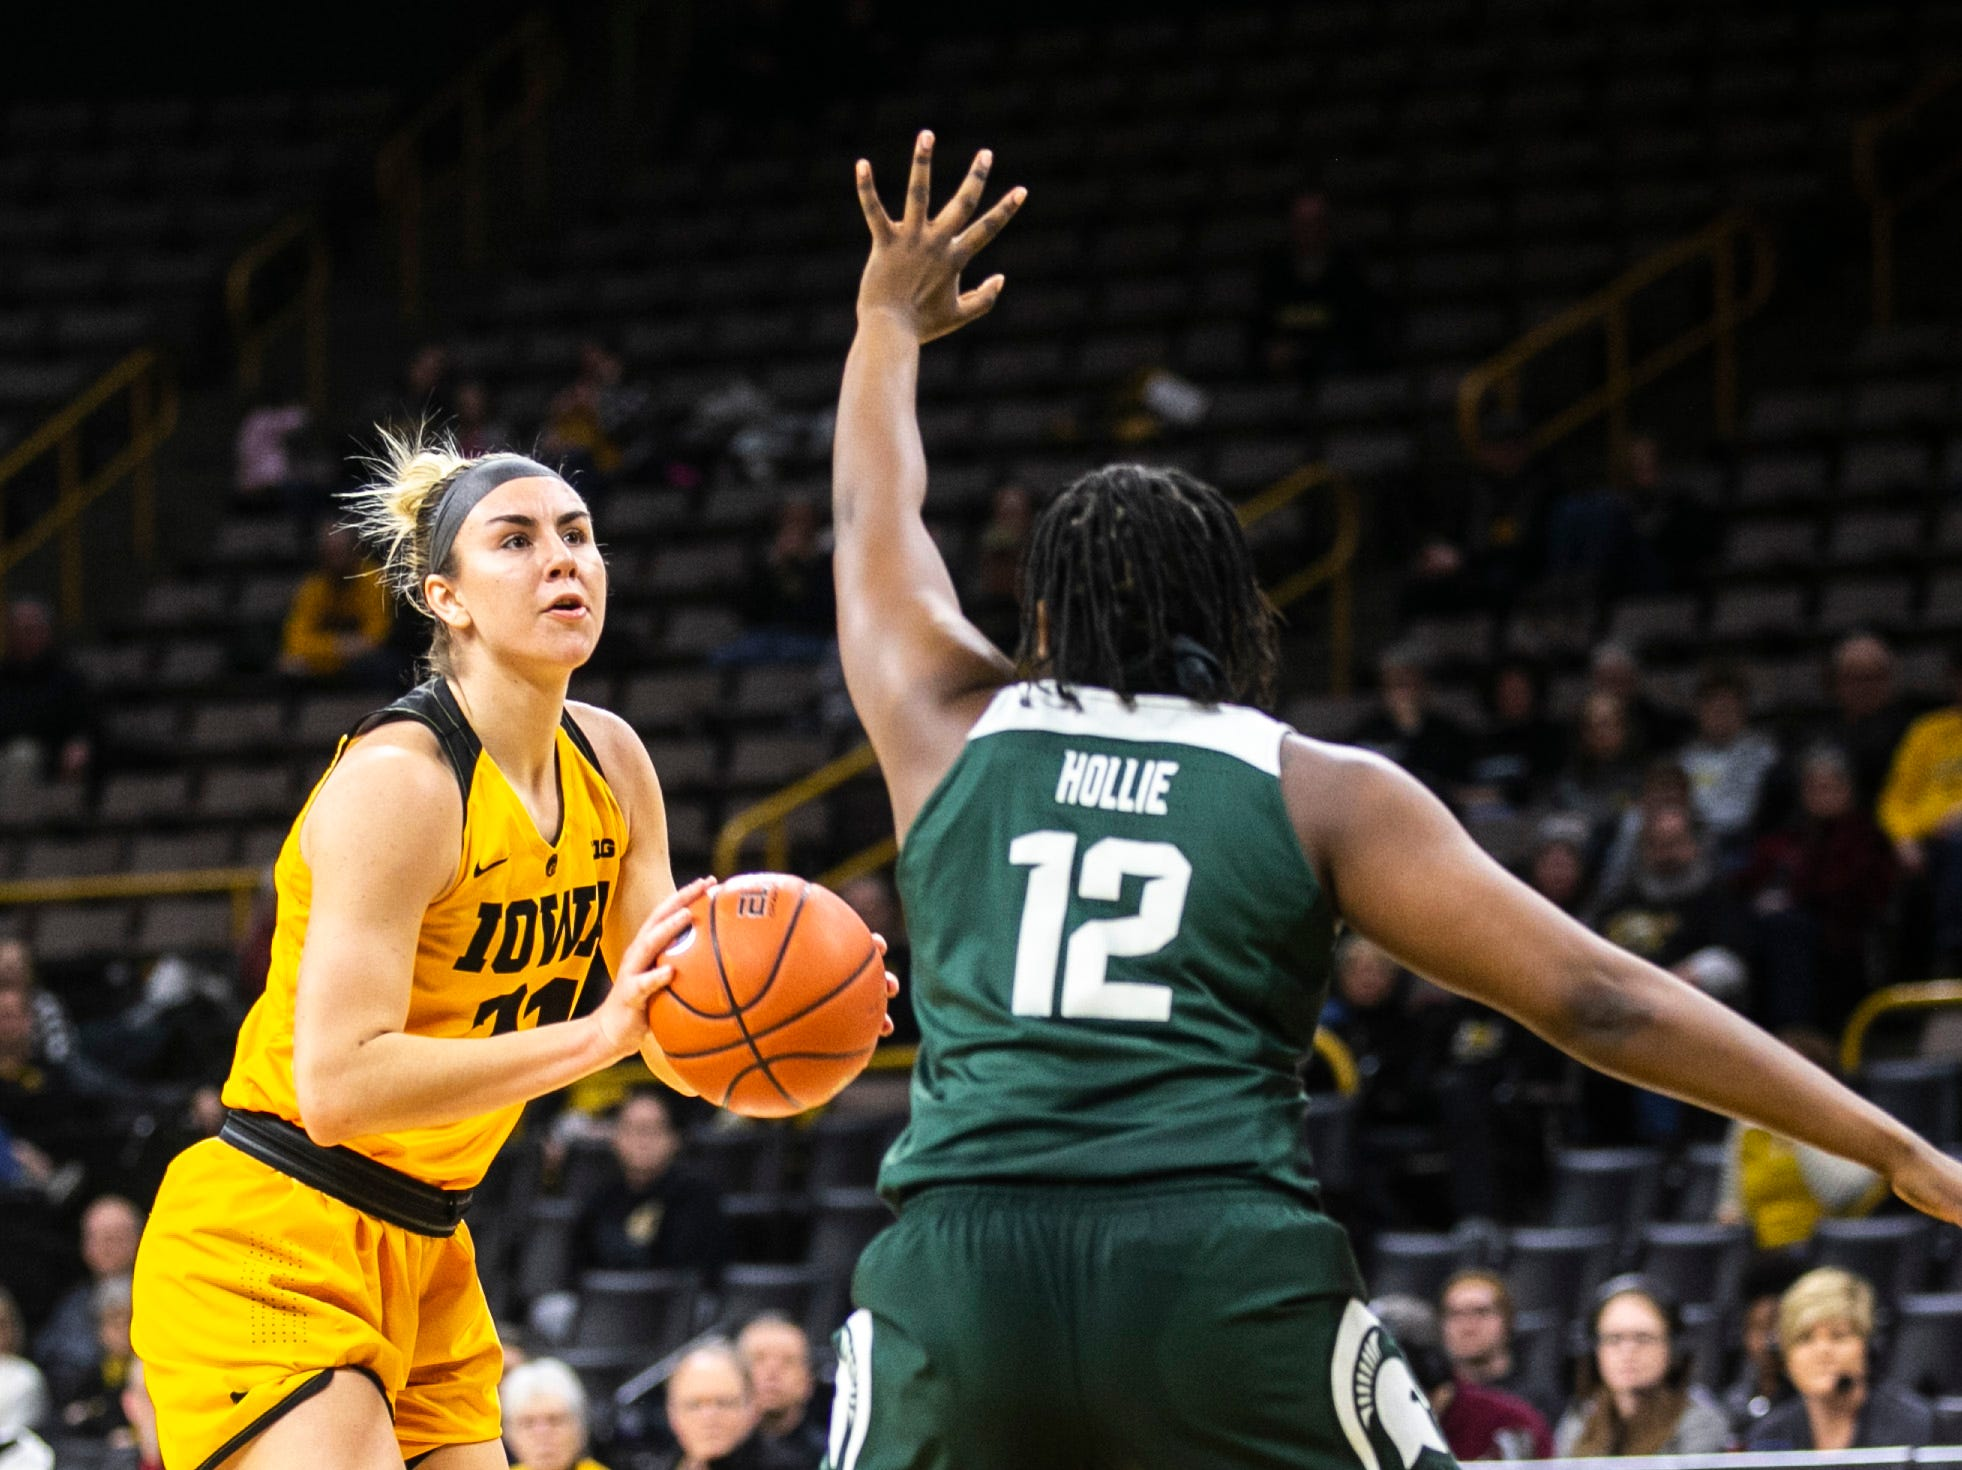 Iowa forward Hannah Stewart (21) attempts a basket while Michigan State forward Nia Hollie (12) defends during a NCAA Big Ten Conference women's basketball game on Thursday, Feb. 7, 2019 at Carver-Hawkeye Arena in Iowa City, Iowa.